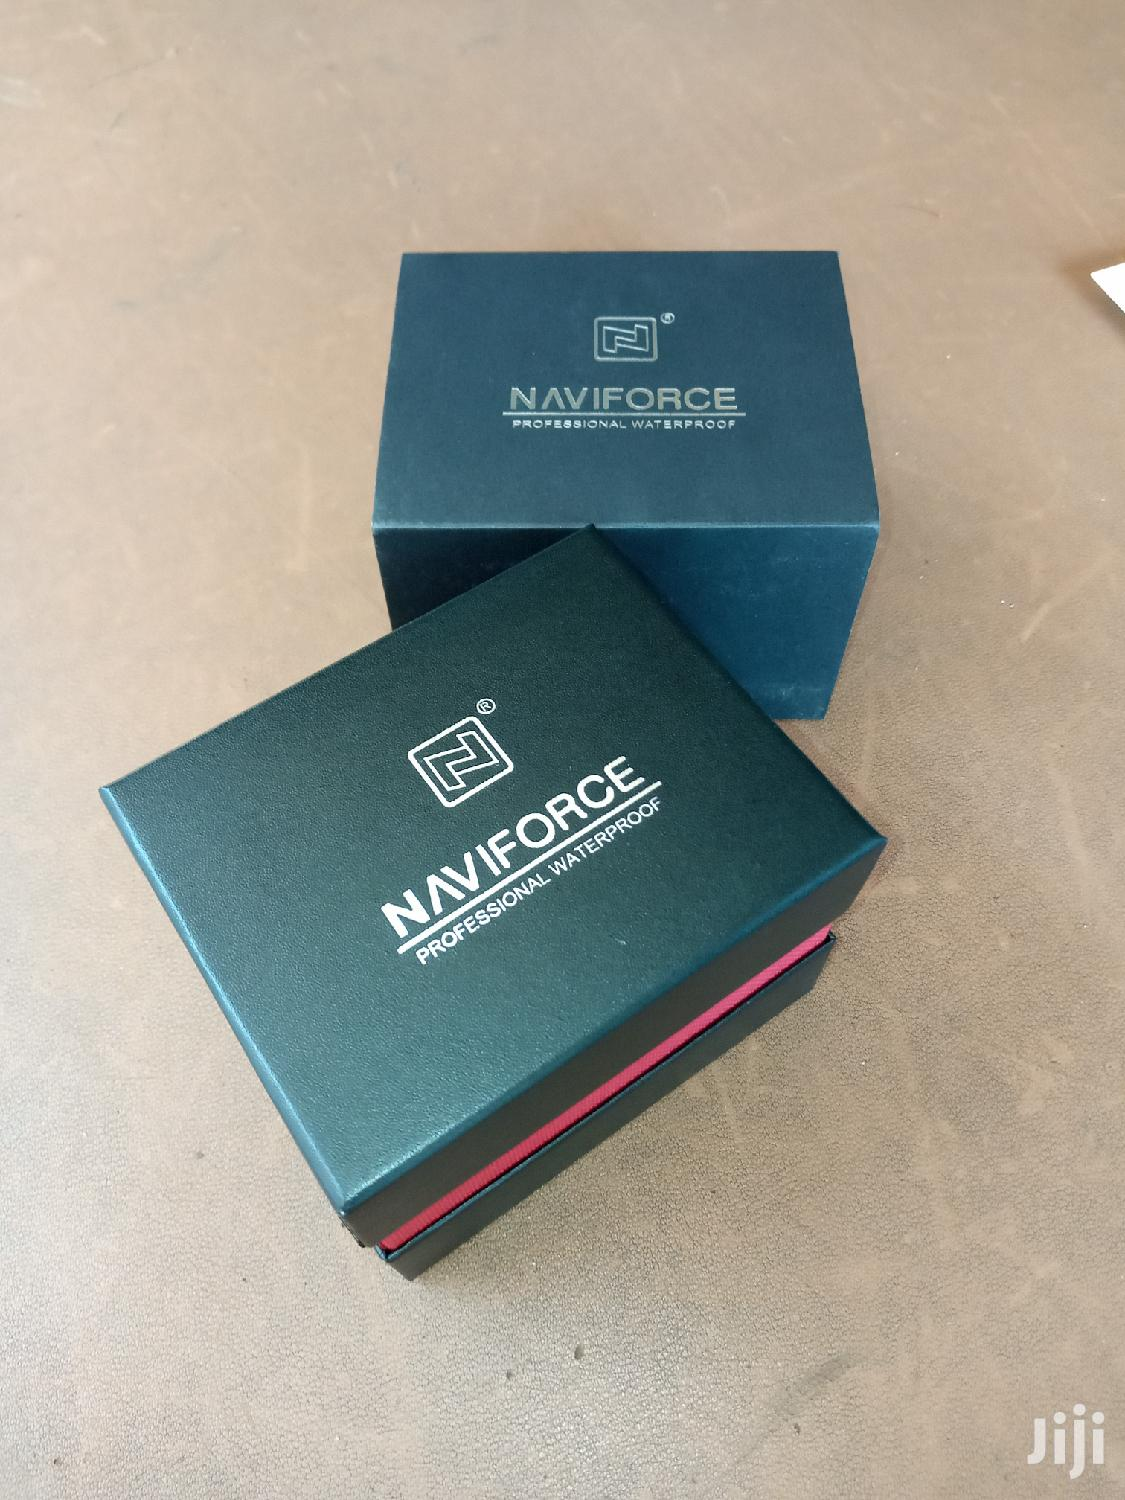 Naviforce Men's Leather Watch | Watches for sale in Kampala, Central Region, Uganda